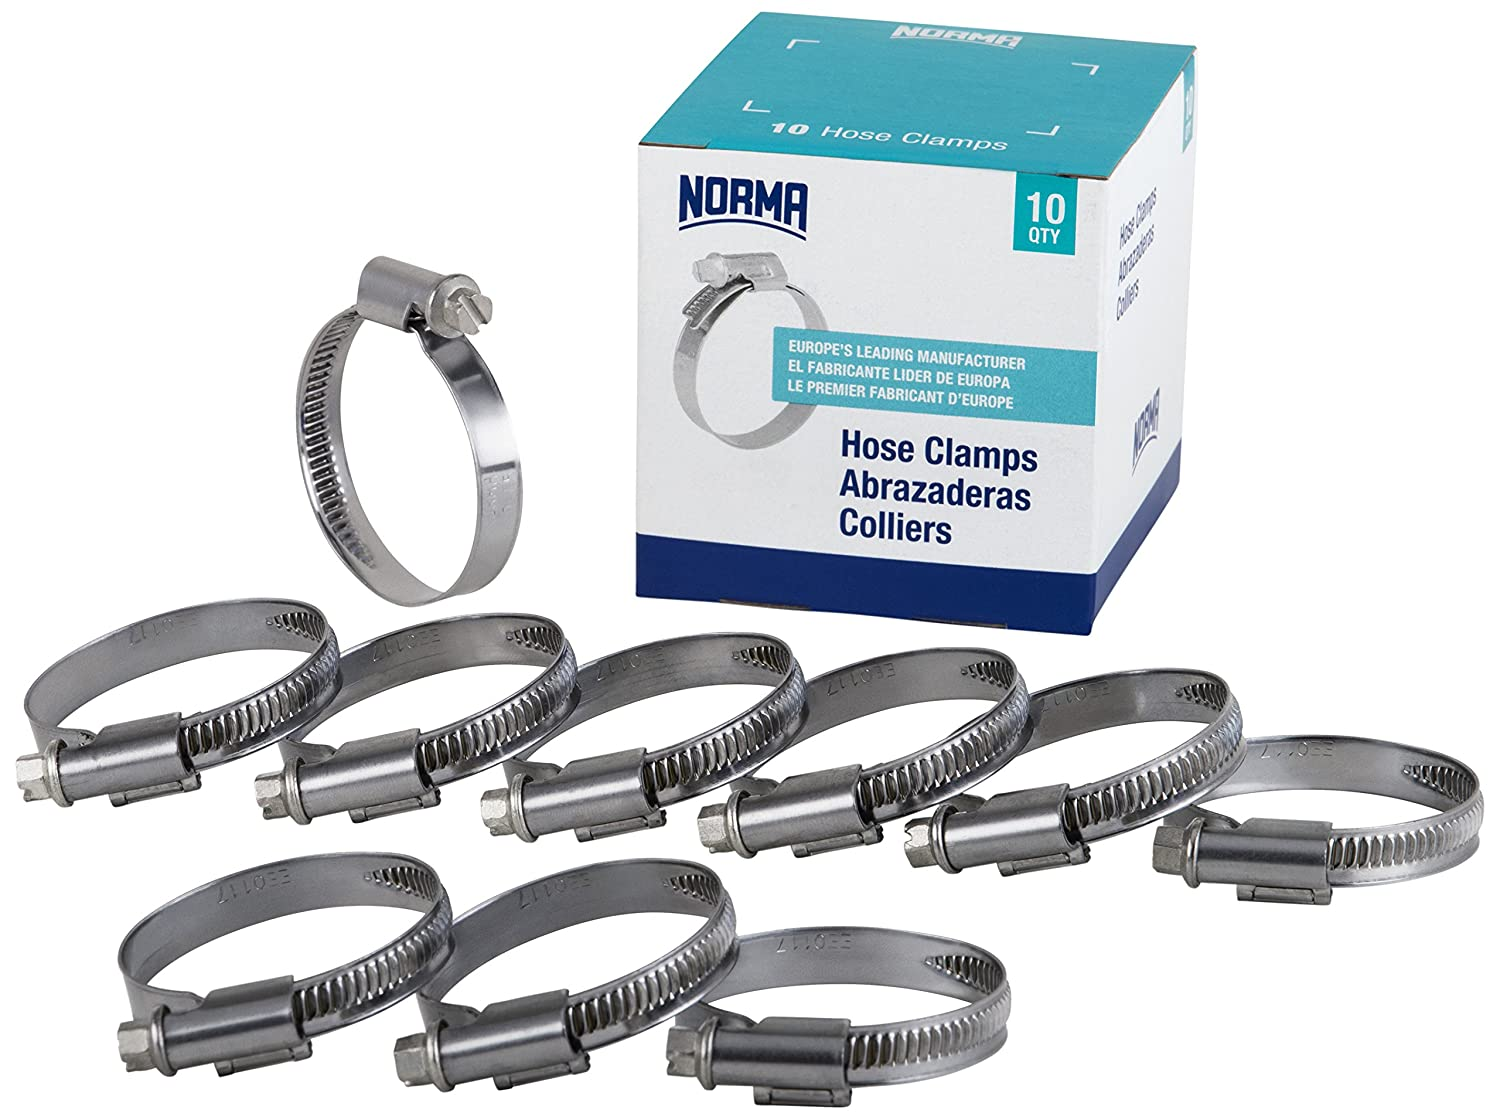 16 mm-27 mm x 12 mm W4 NORMA 01366704021-000-0539 Hose Clamps Pack of 10